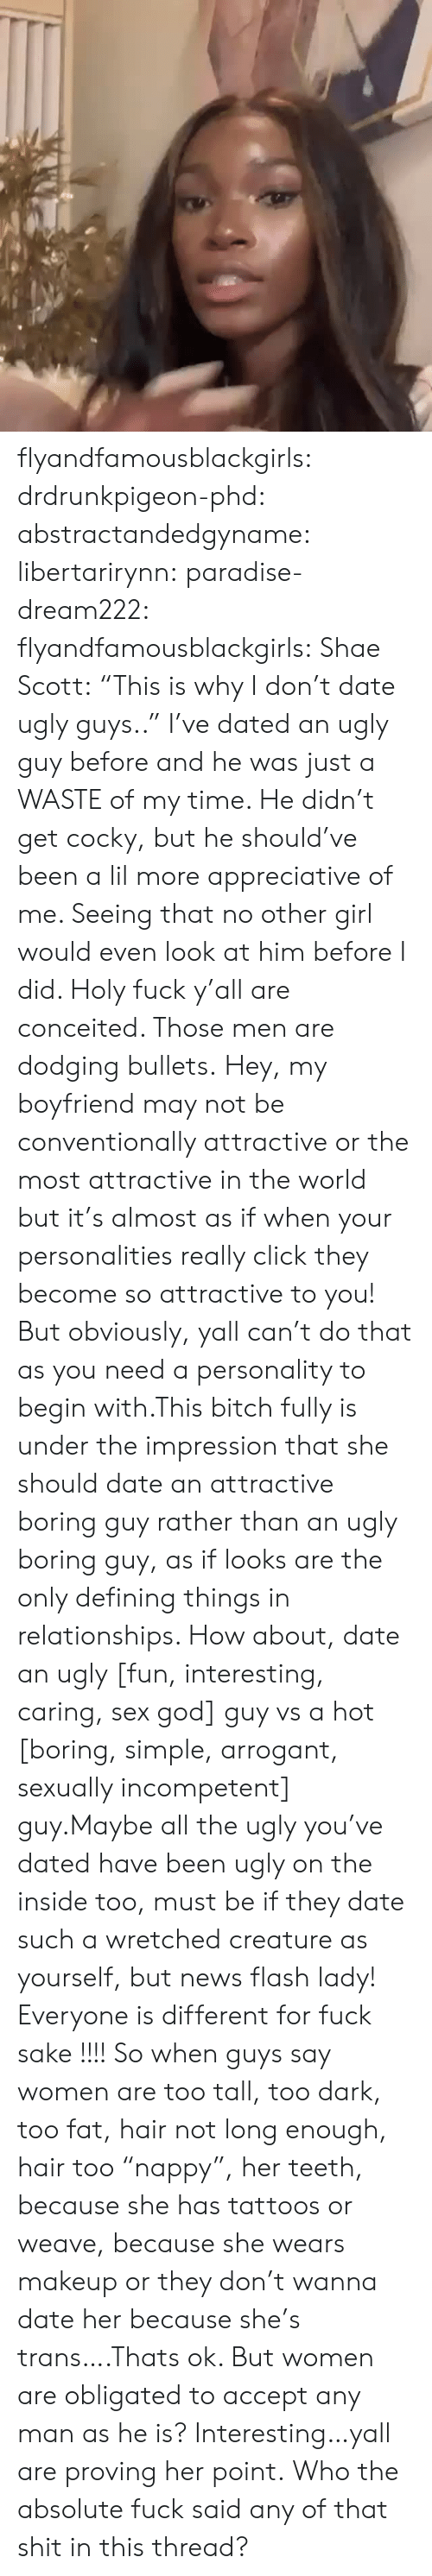 "No Other: flyandfamousblackgirls:  drdrunkpigeon-phd:  abstractandedgyname:  libertarirynn:  paradise-dream222:  flyandfamousblackgirls:  Shae Scott: ""This is why I don't date ugly guys..""  I've dated an ugly guy before and he was just a WASTE of my time. He didn't get cocky, but he should've been a lil more appreciative of me. Seeing that no other girl would even look at him before I did.   Holy fuck y'all are conceited. Those men are dodging bullets.    Hey, my boyfriend may not be conventionally attractive or the most attractive in the world but it's almost as if when your personalities really click they become so attractive to you! But obviously, yall can't do that as you need a personality to begin with.This bitch fully is under the impression that she should date an attractive boring guy rather than an ugly boring guy, as if looks are the only defining things in relationships. How about, date an ugly [fun, interesting, caring, sex god] guy vs a hot [boring, simple, arrogant, sexually incompetent] guy.Maybe all the ugly you've dated have been ugly on the inside too, must be if they date such a wretched creature as yourself, but news flash lady! Everyone is different for fuck sake !!!!  So when guys say women are too tall, too dark, too fat, hair not long enough, hair too ""nappy"", her teeth, because she has tattoos or weave, because she wears makeup or they don't wanna date her because she's trans….Thats ok. But women are obligated to accept any man as he is? Interesting…yall are proving her point.  Who the absolute fuck said any of that shit in this thread?"